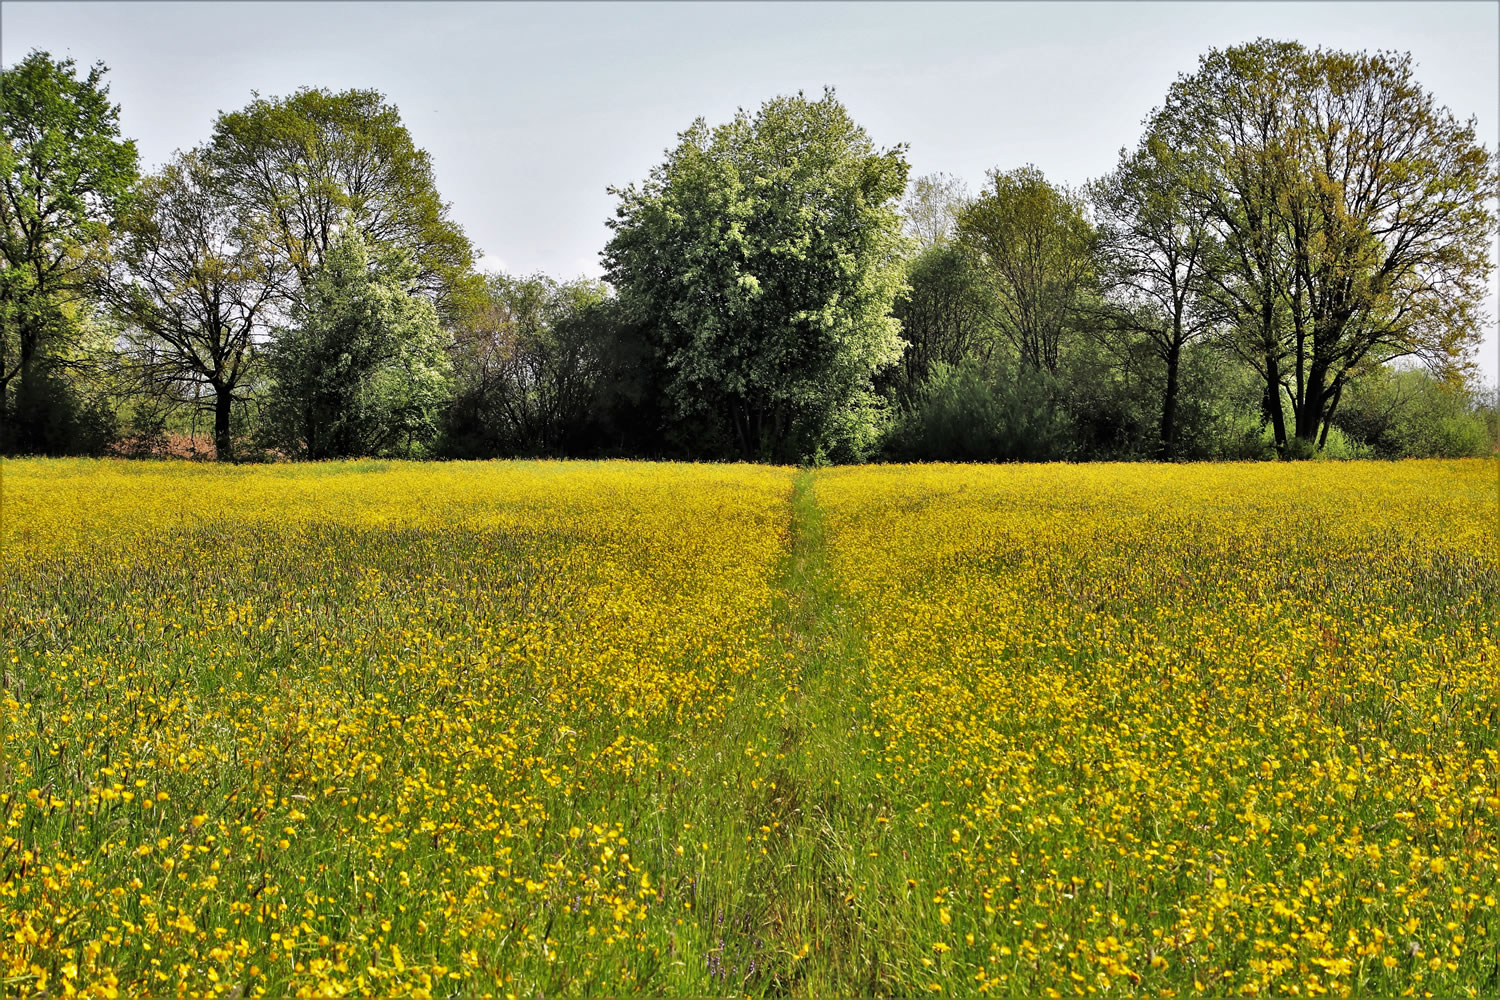 Field Of Buttercups Wallpaper Mural